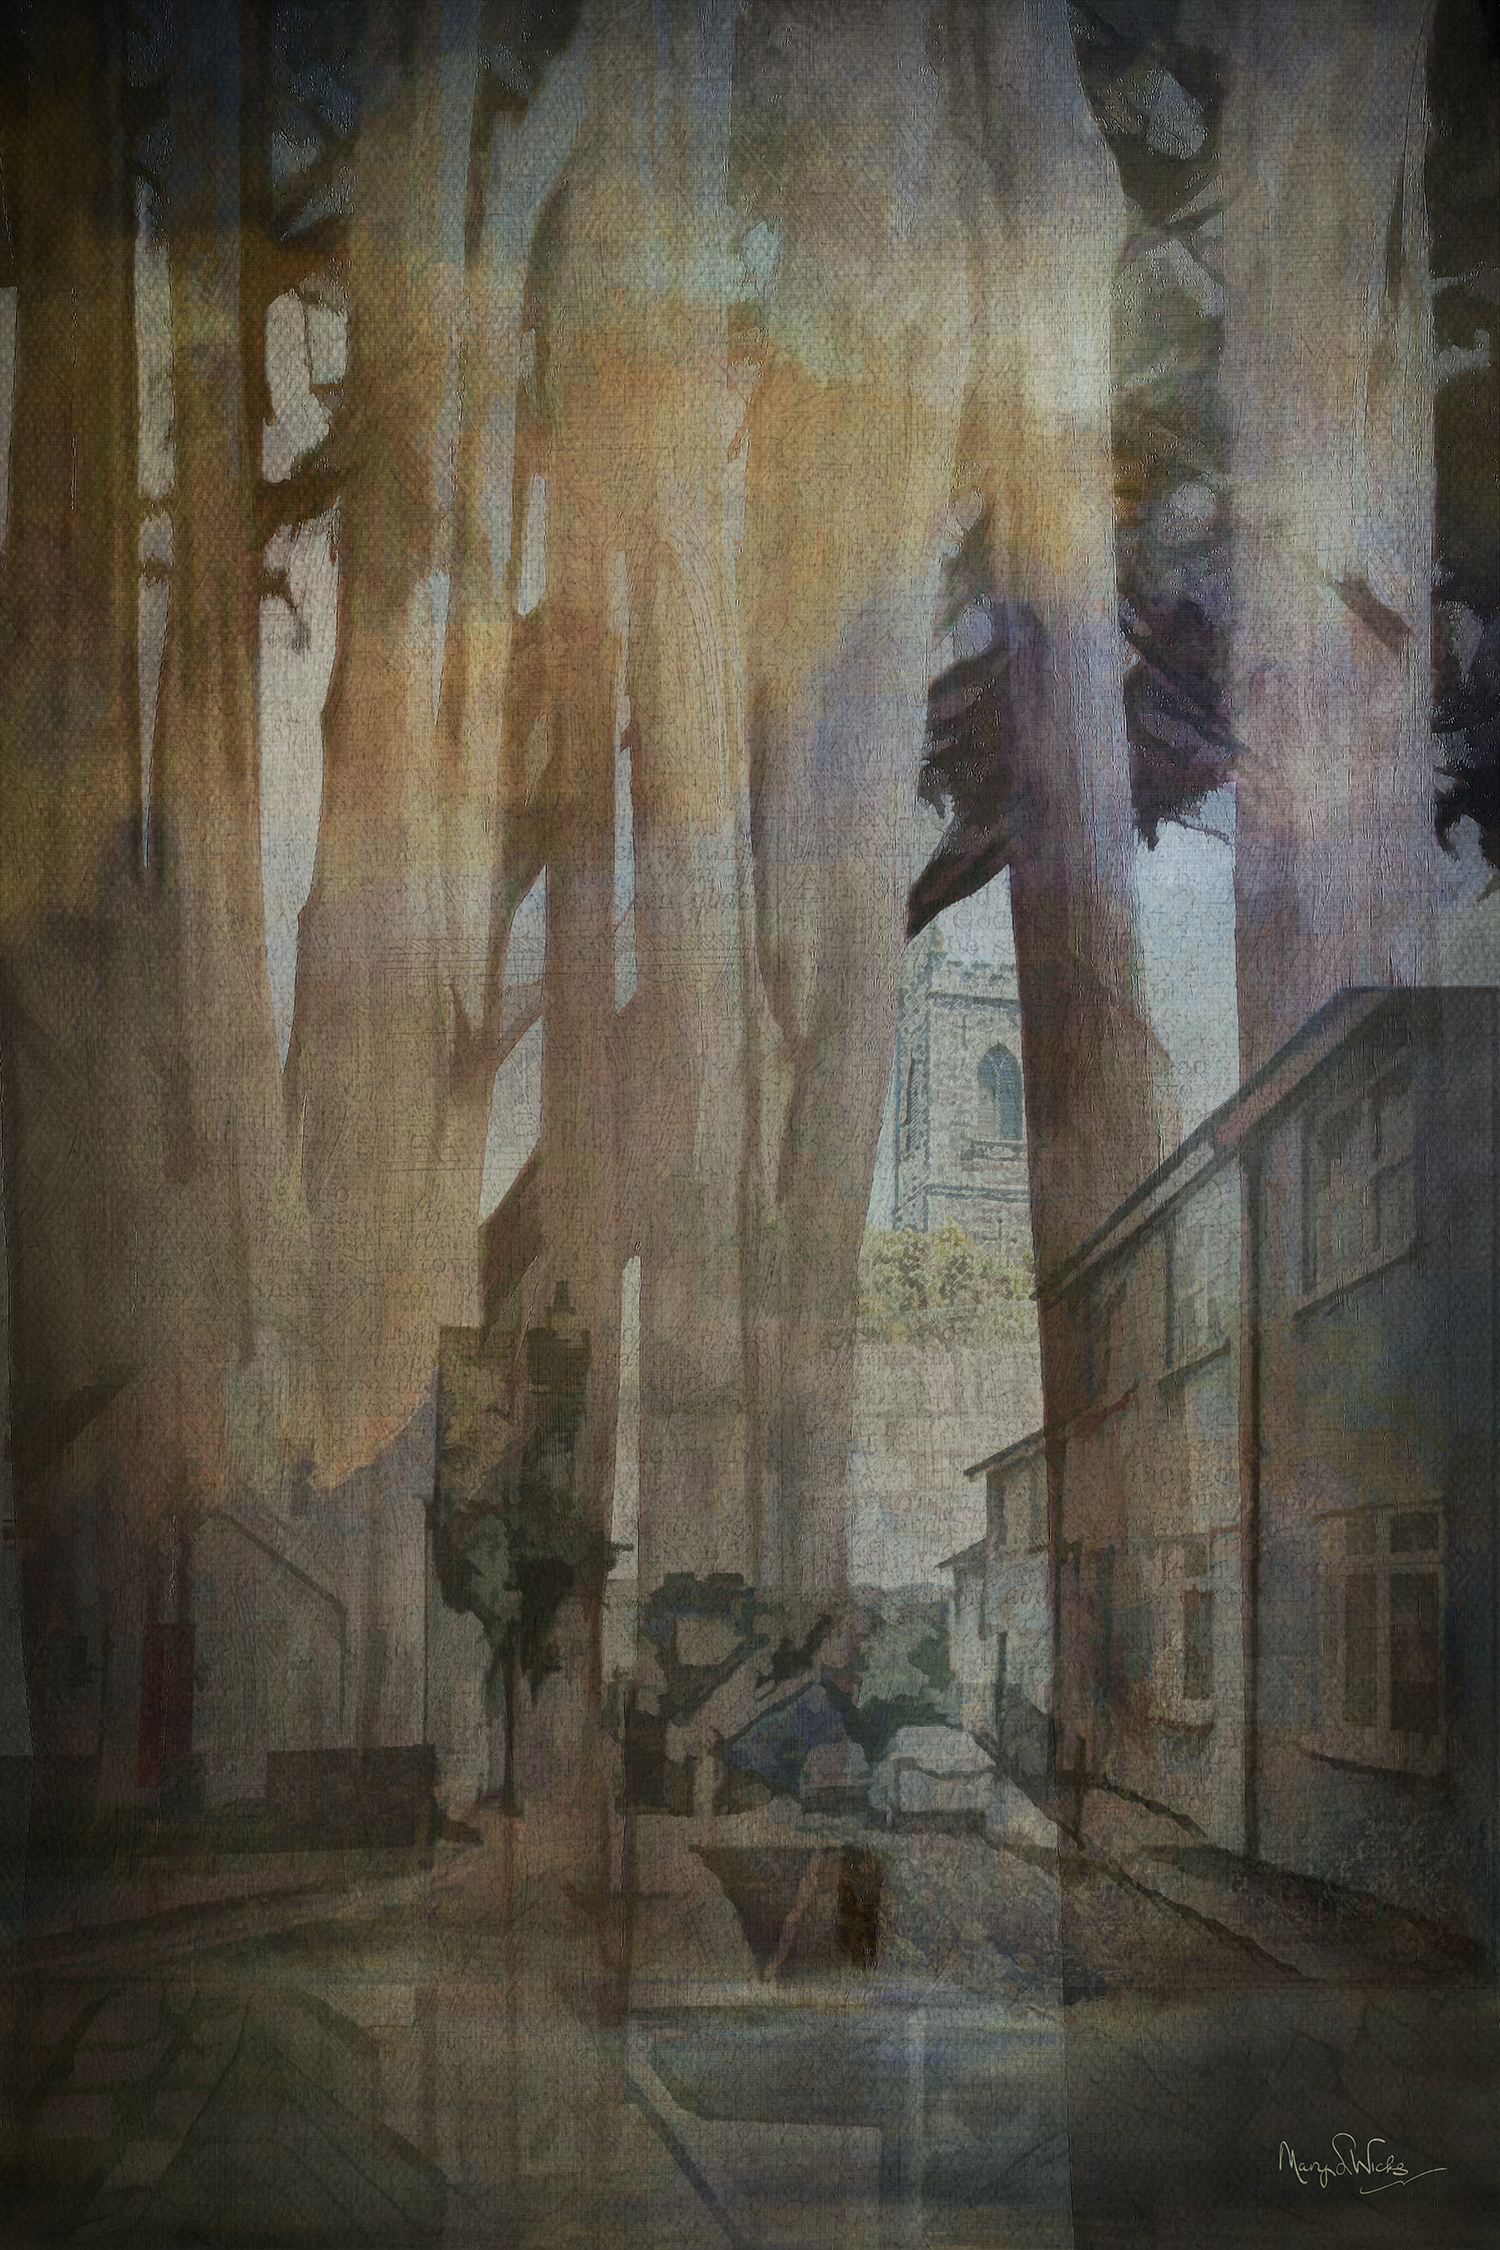 Abstract Woodlands/Village